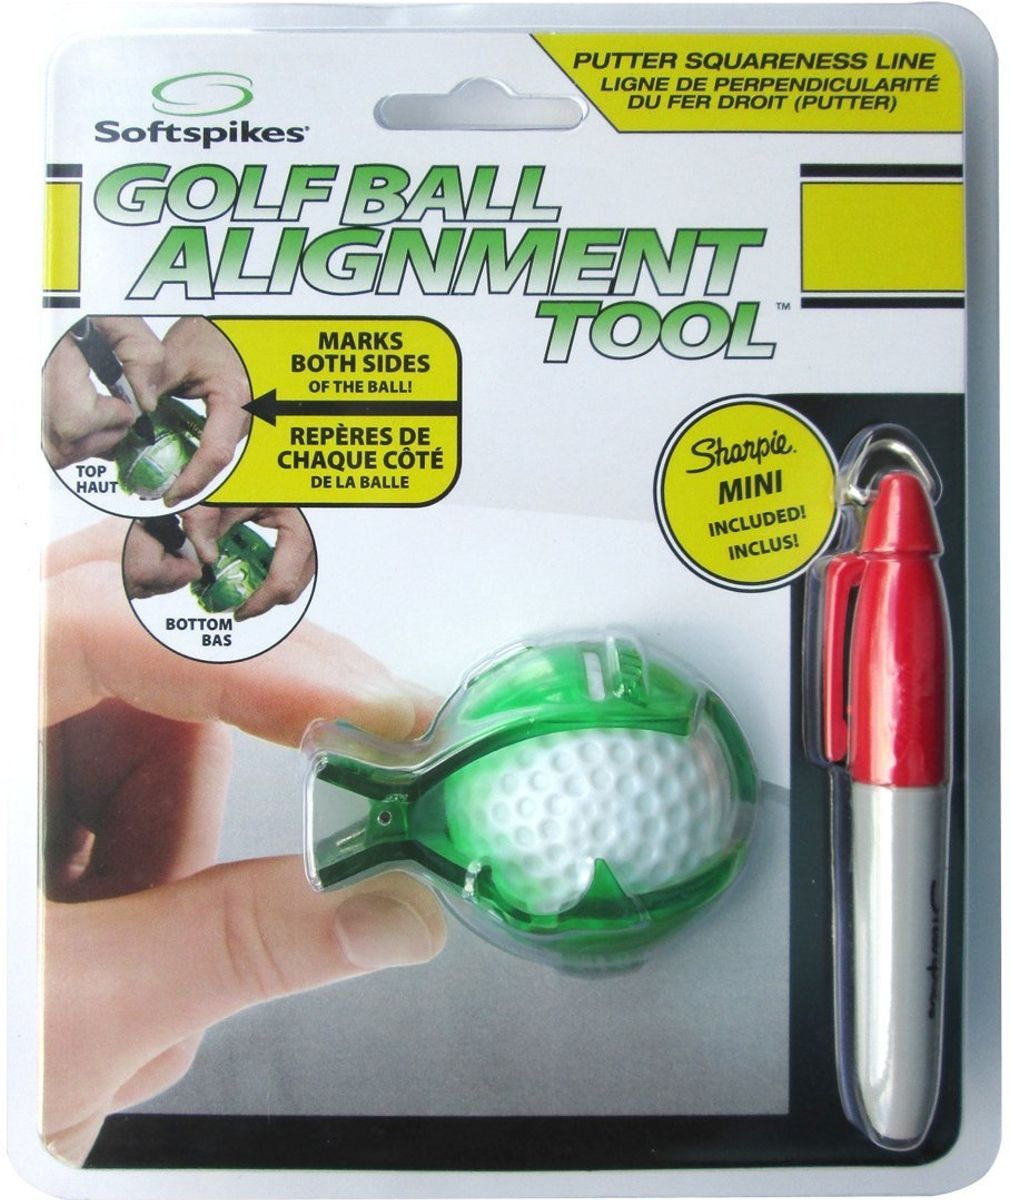 Softspikes Golf Ball Alignment Tool